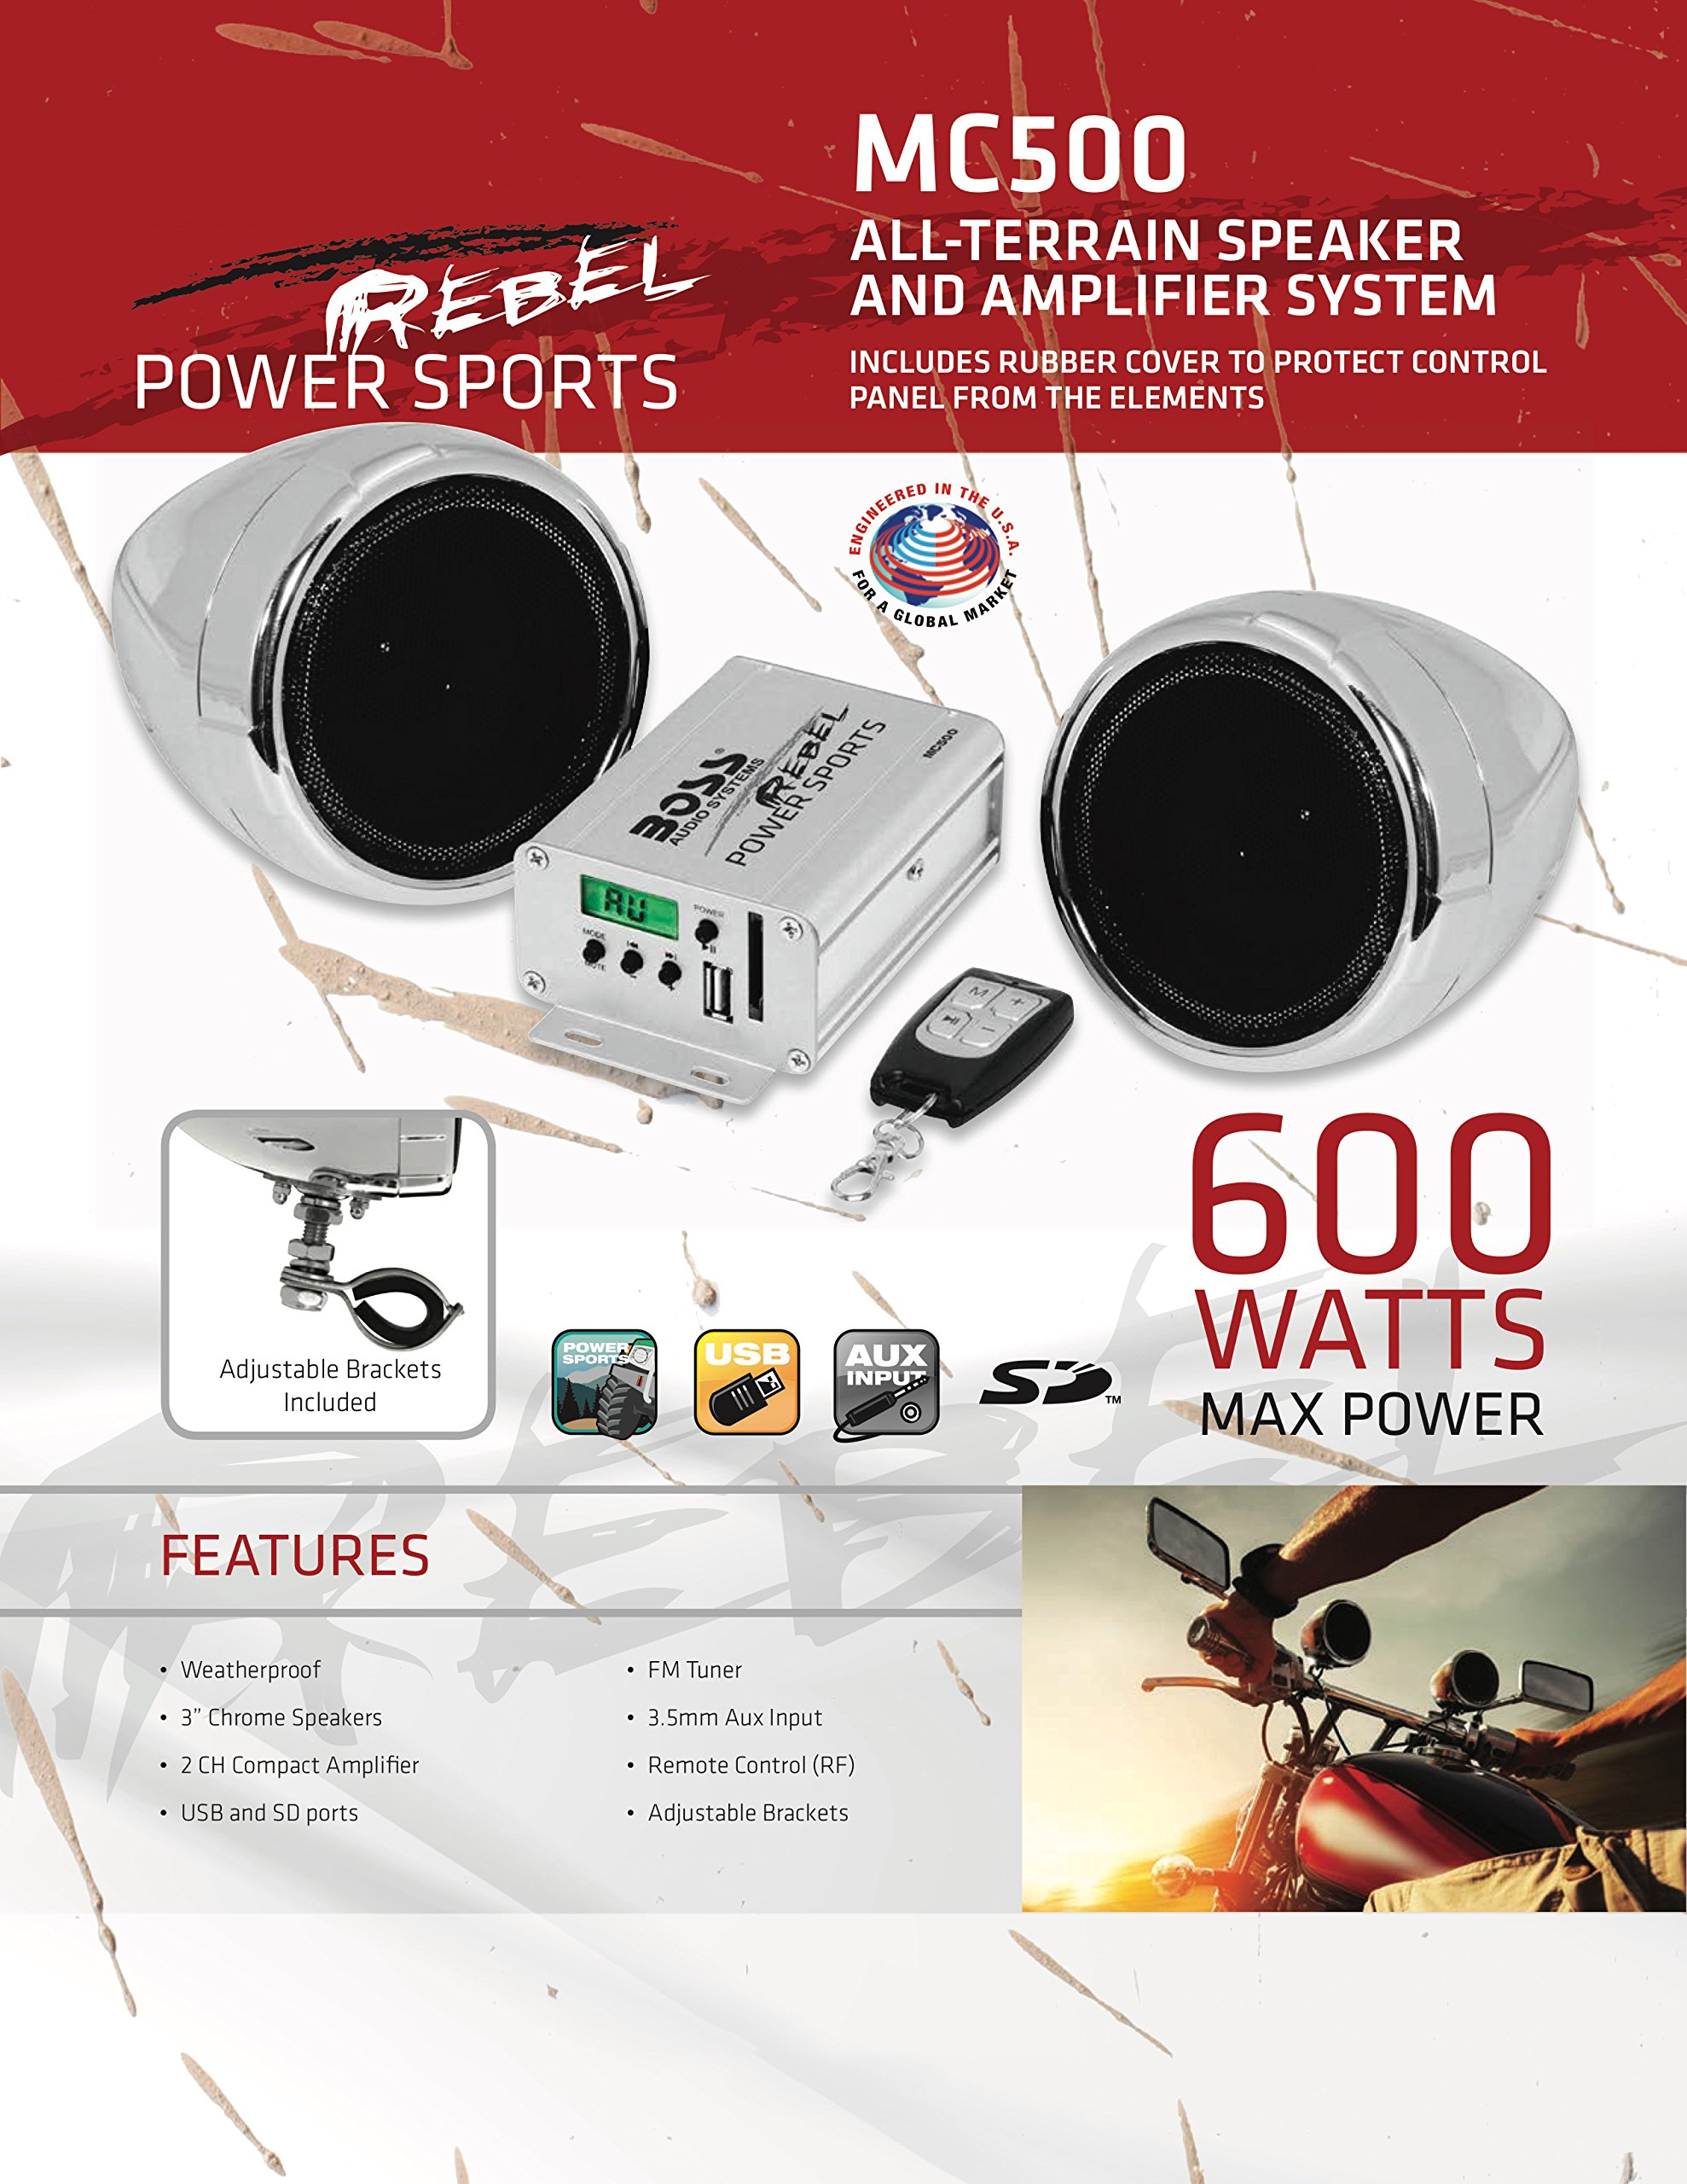 BOSS Audio MC500 All-Terrain, Weatherproof Speaker And Amplifier Sound System, Two 3 Inch Speakers, Compact Amplifier, Multi-Function Remote Control, Ideal For Motorcycles/ATV and 12 Volt Applications by BOSS Audio (Image #6)